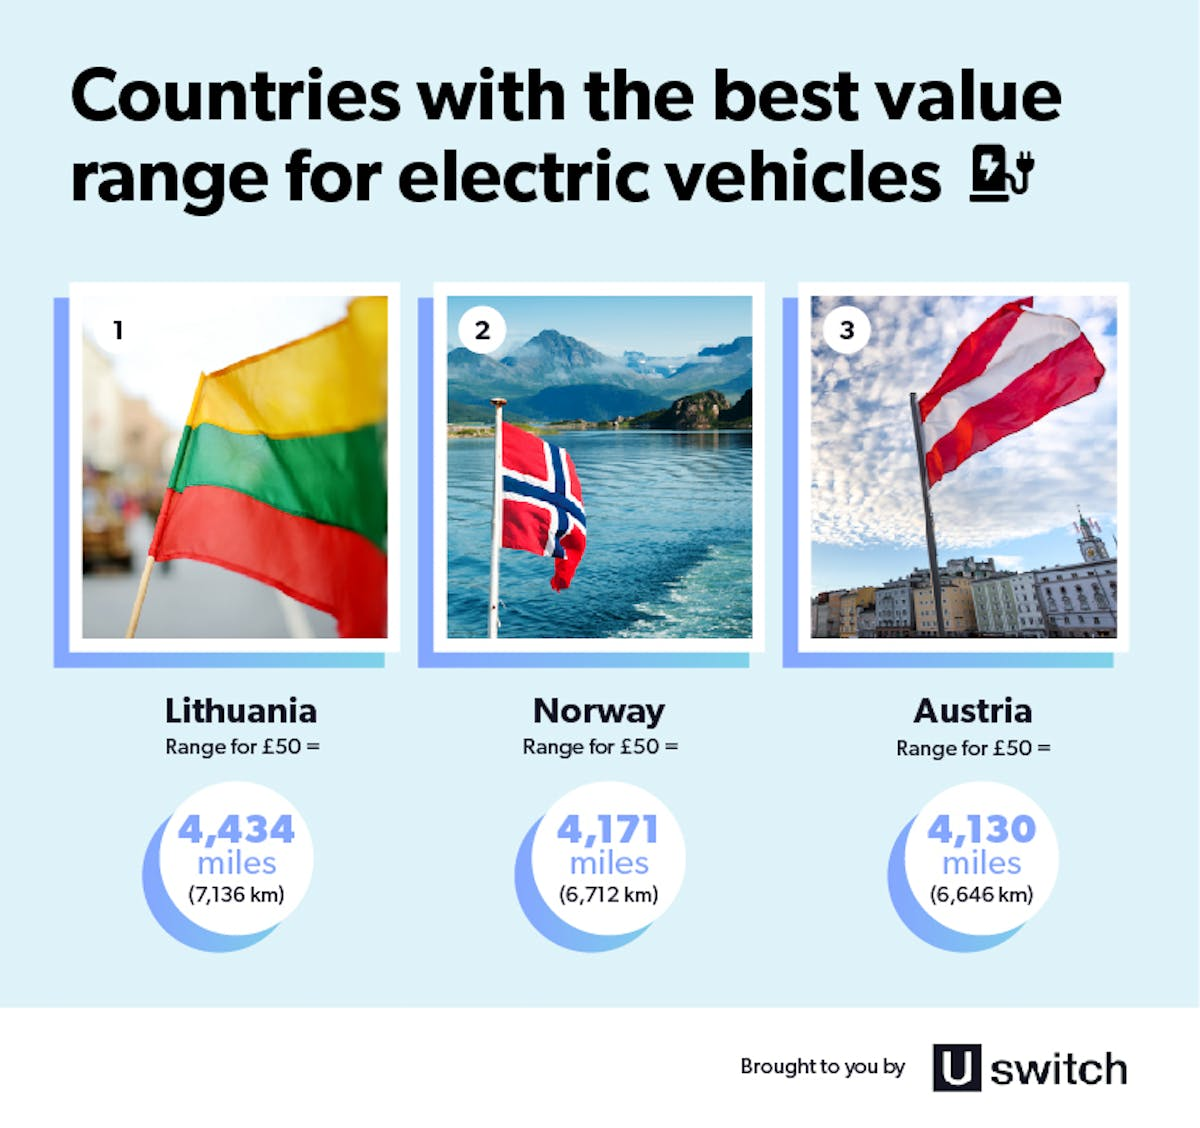 Best value range for electric vehicles.